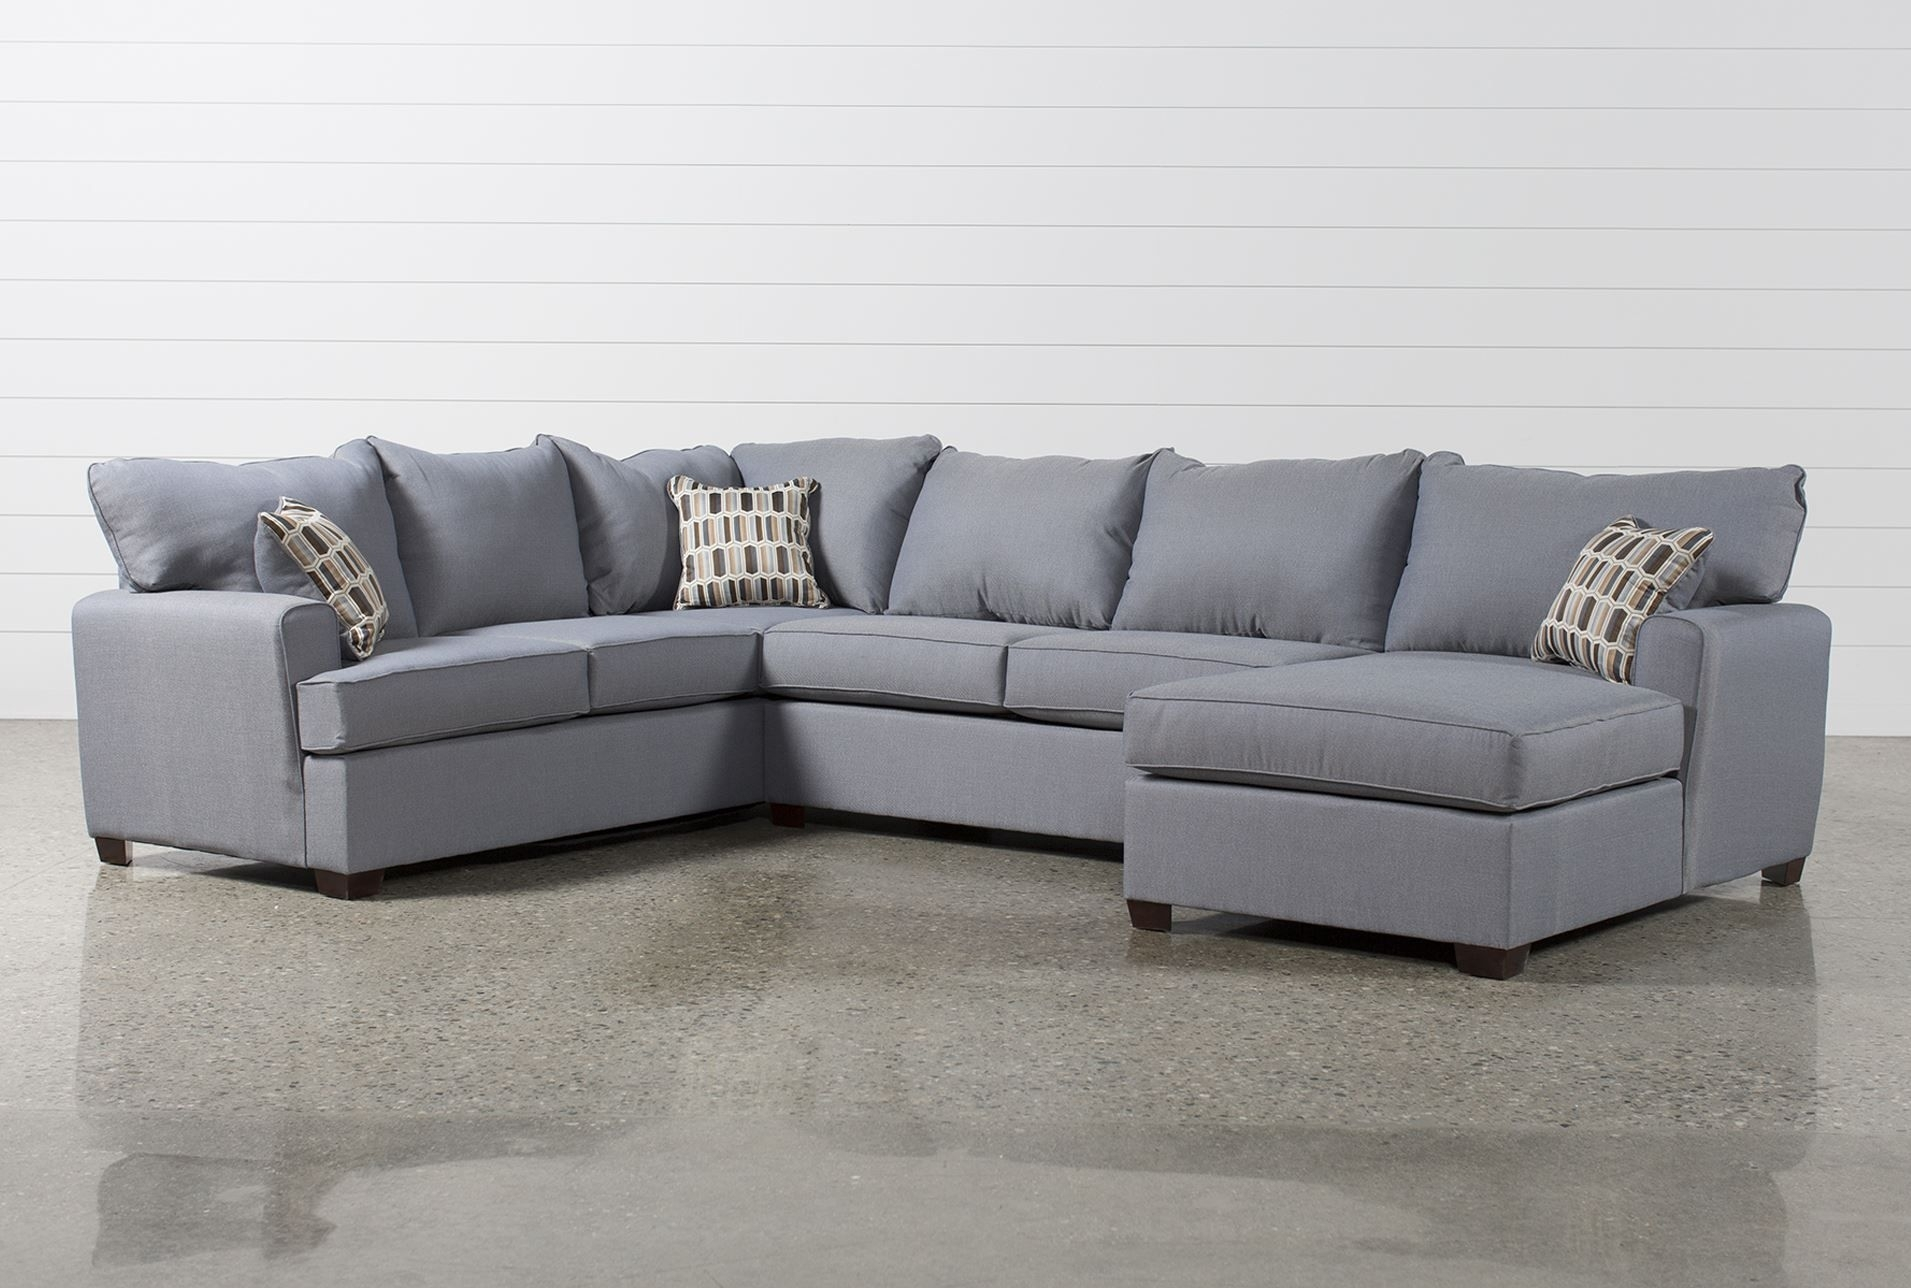 Bingham 3 Piece Sectional W/raf Chaise – Signature | For The Home In Mcdade Graphite 2 Piece Sectionals With Raf Chaise (Image 6 of 25)